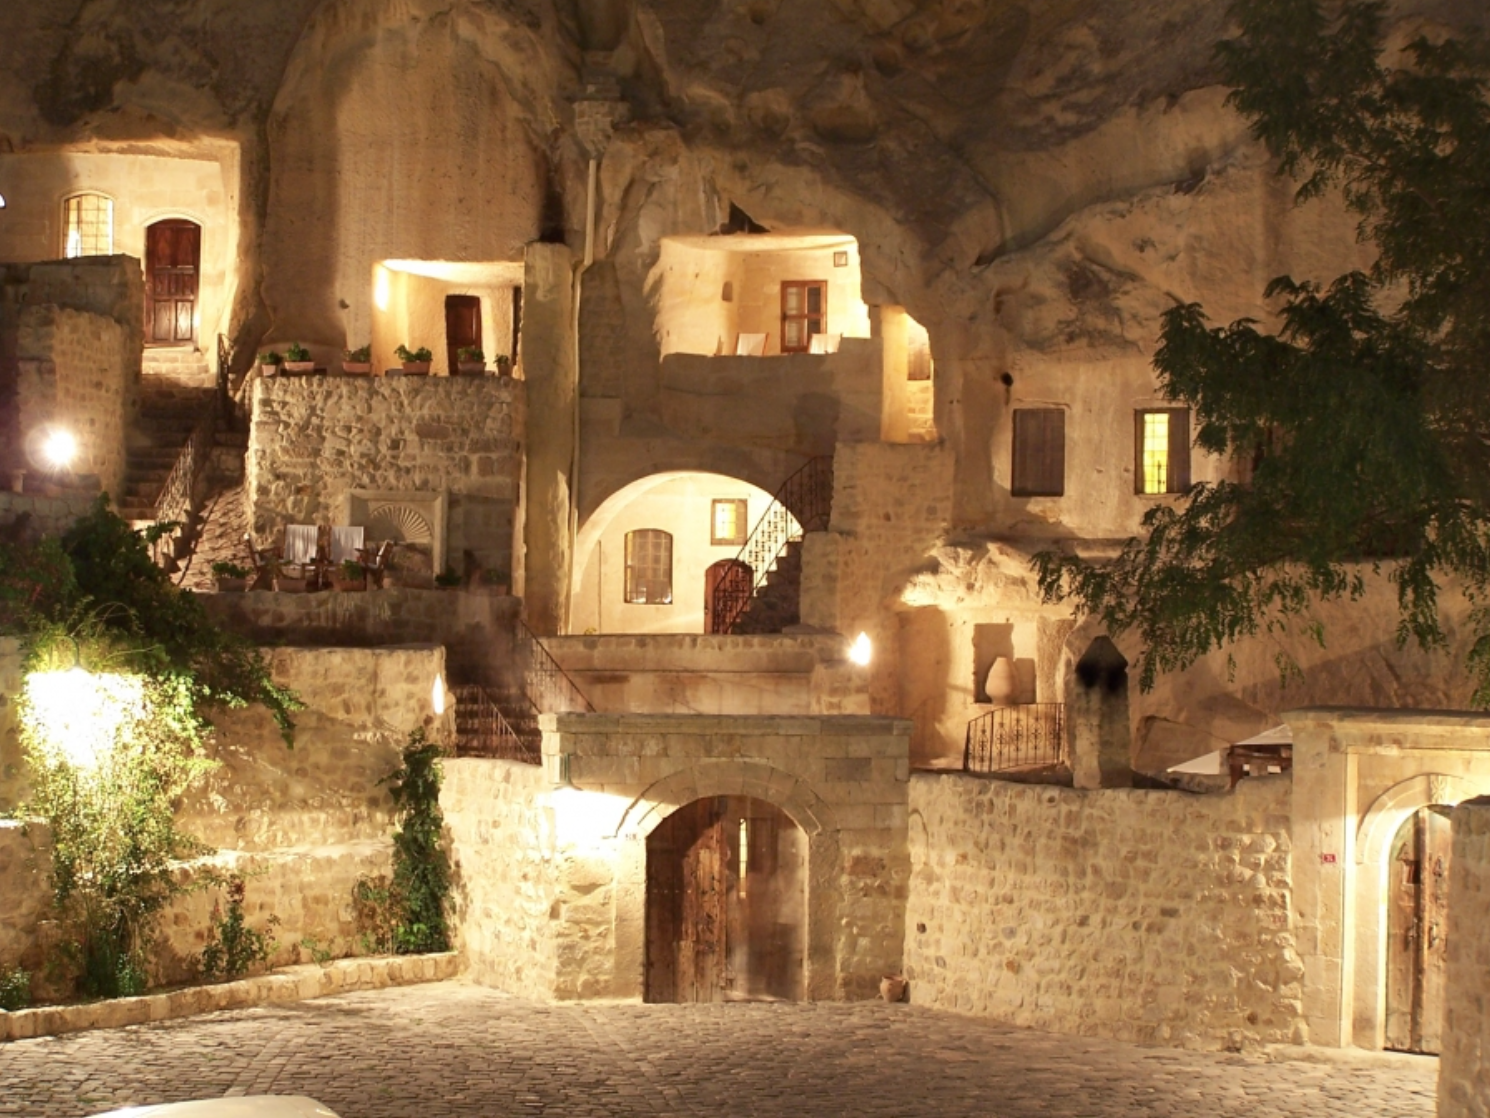 These caves date back to the Middle Ages--the 5th and 6th centuries.